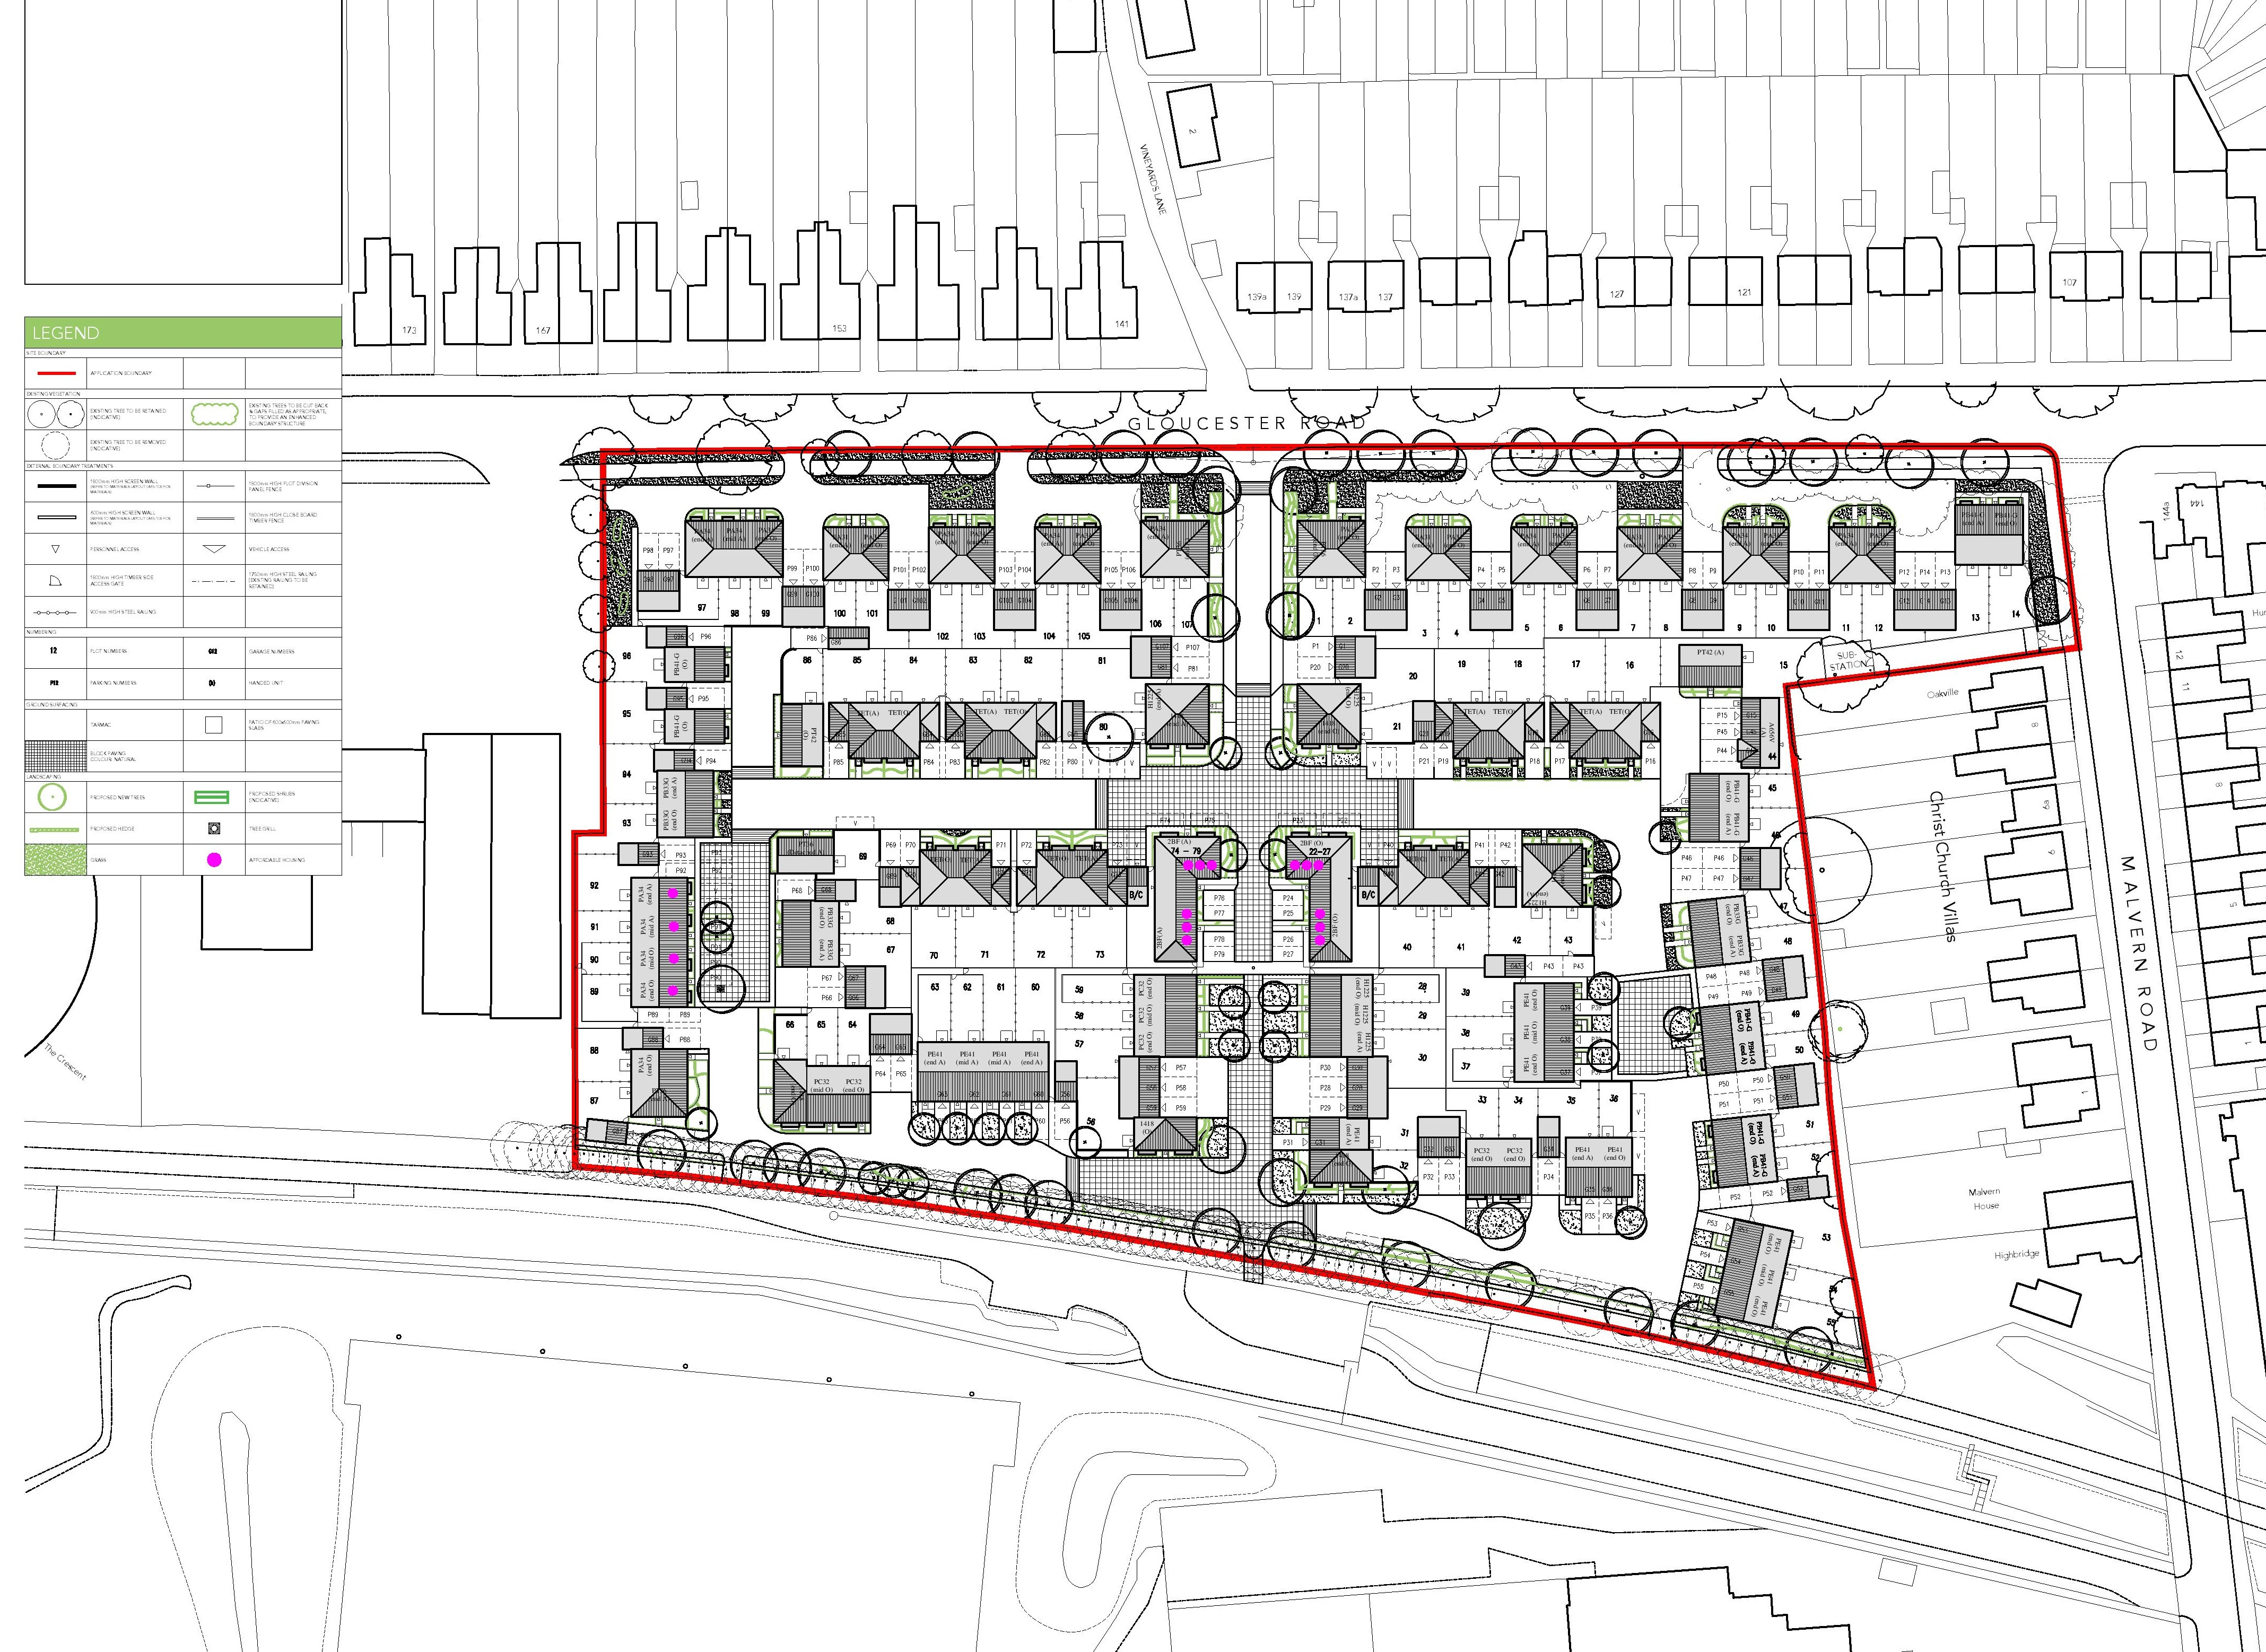 Gloucester Road planning layout